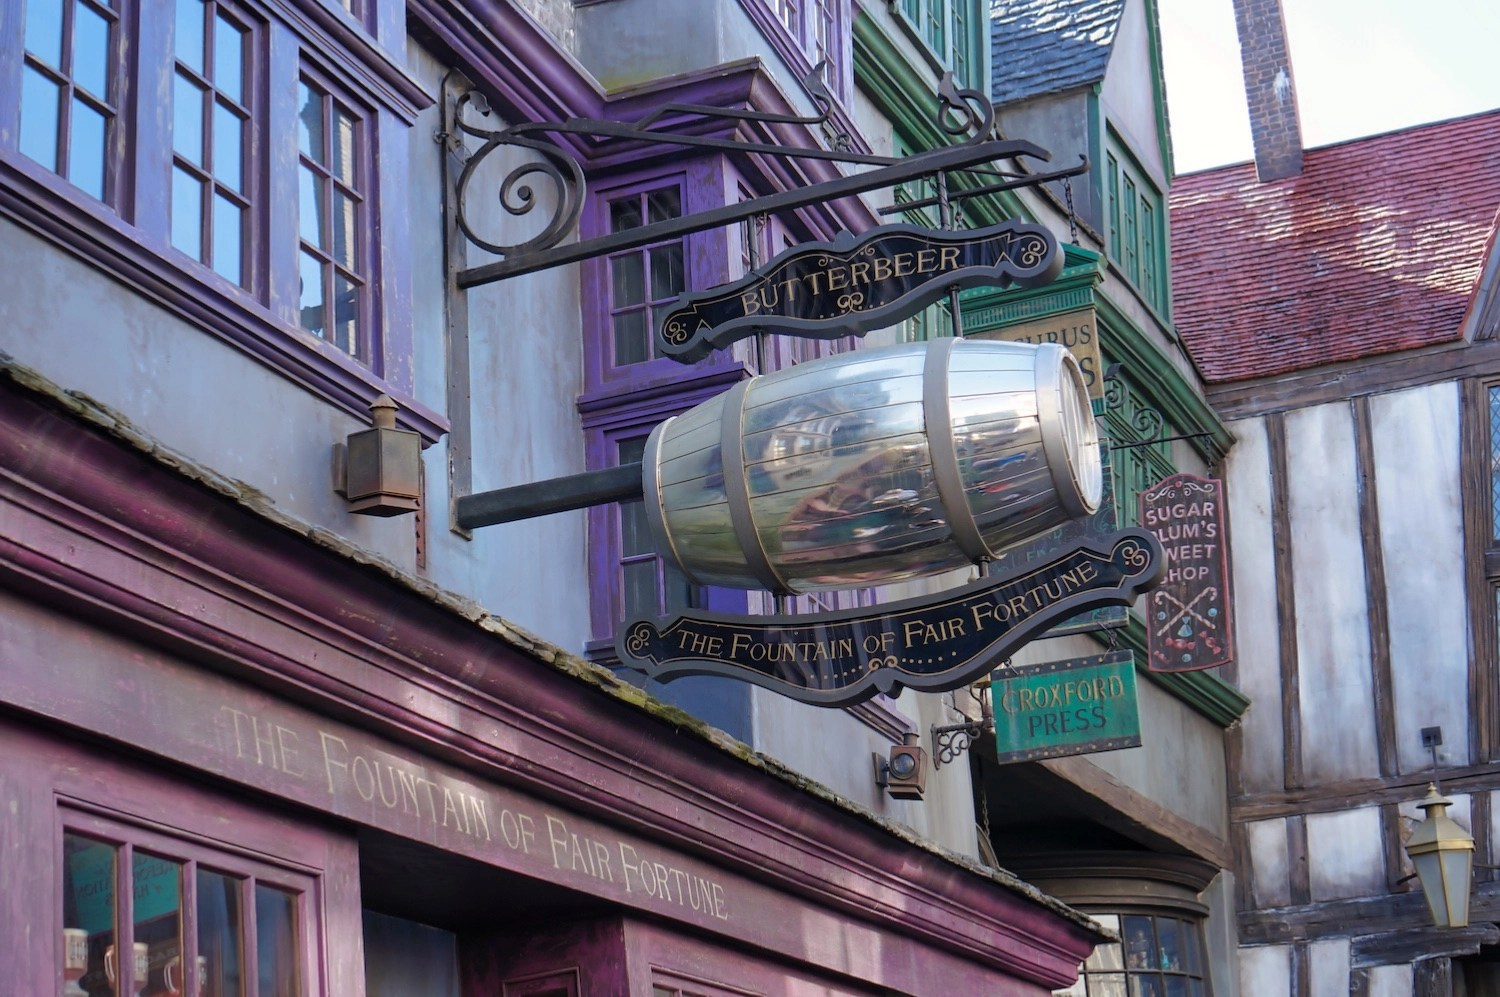 Virtuala Visit to Wizarding World - Diagon Alley